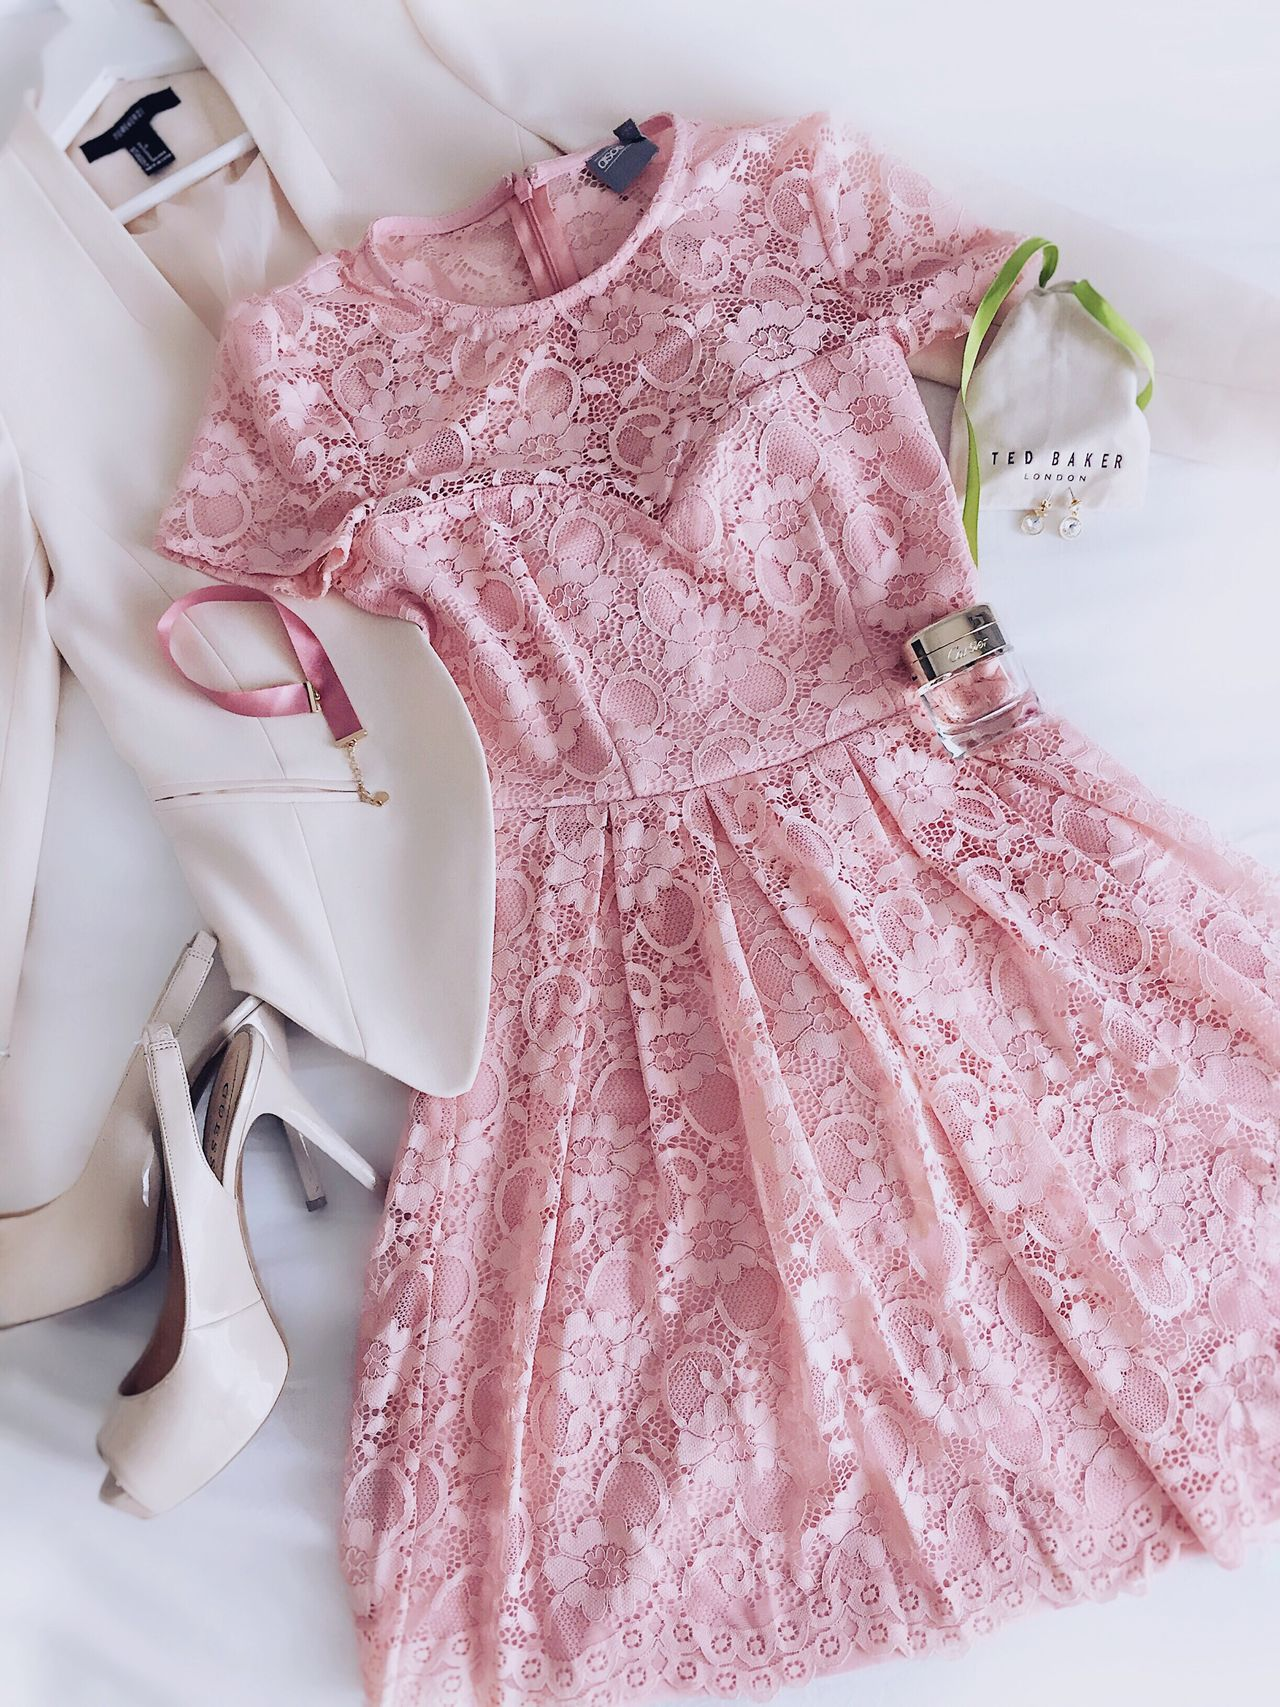 👗👗👗 Indoors  Fashion Pink Color High Angle View Directly Above Wedding Close-up Textile MyLook Ootd Outfit Flatlay On The Bed Fashionista Pink Dress Guess ASOS High Heels Summer Fashion Young Adult Womensfashion Style And Fashion Style Fashion Design Fashion